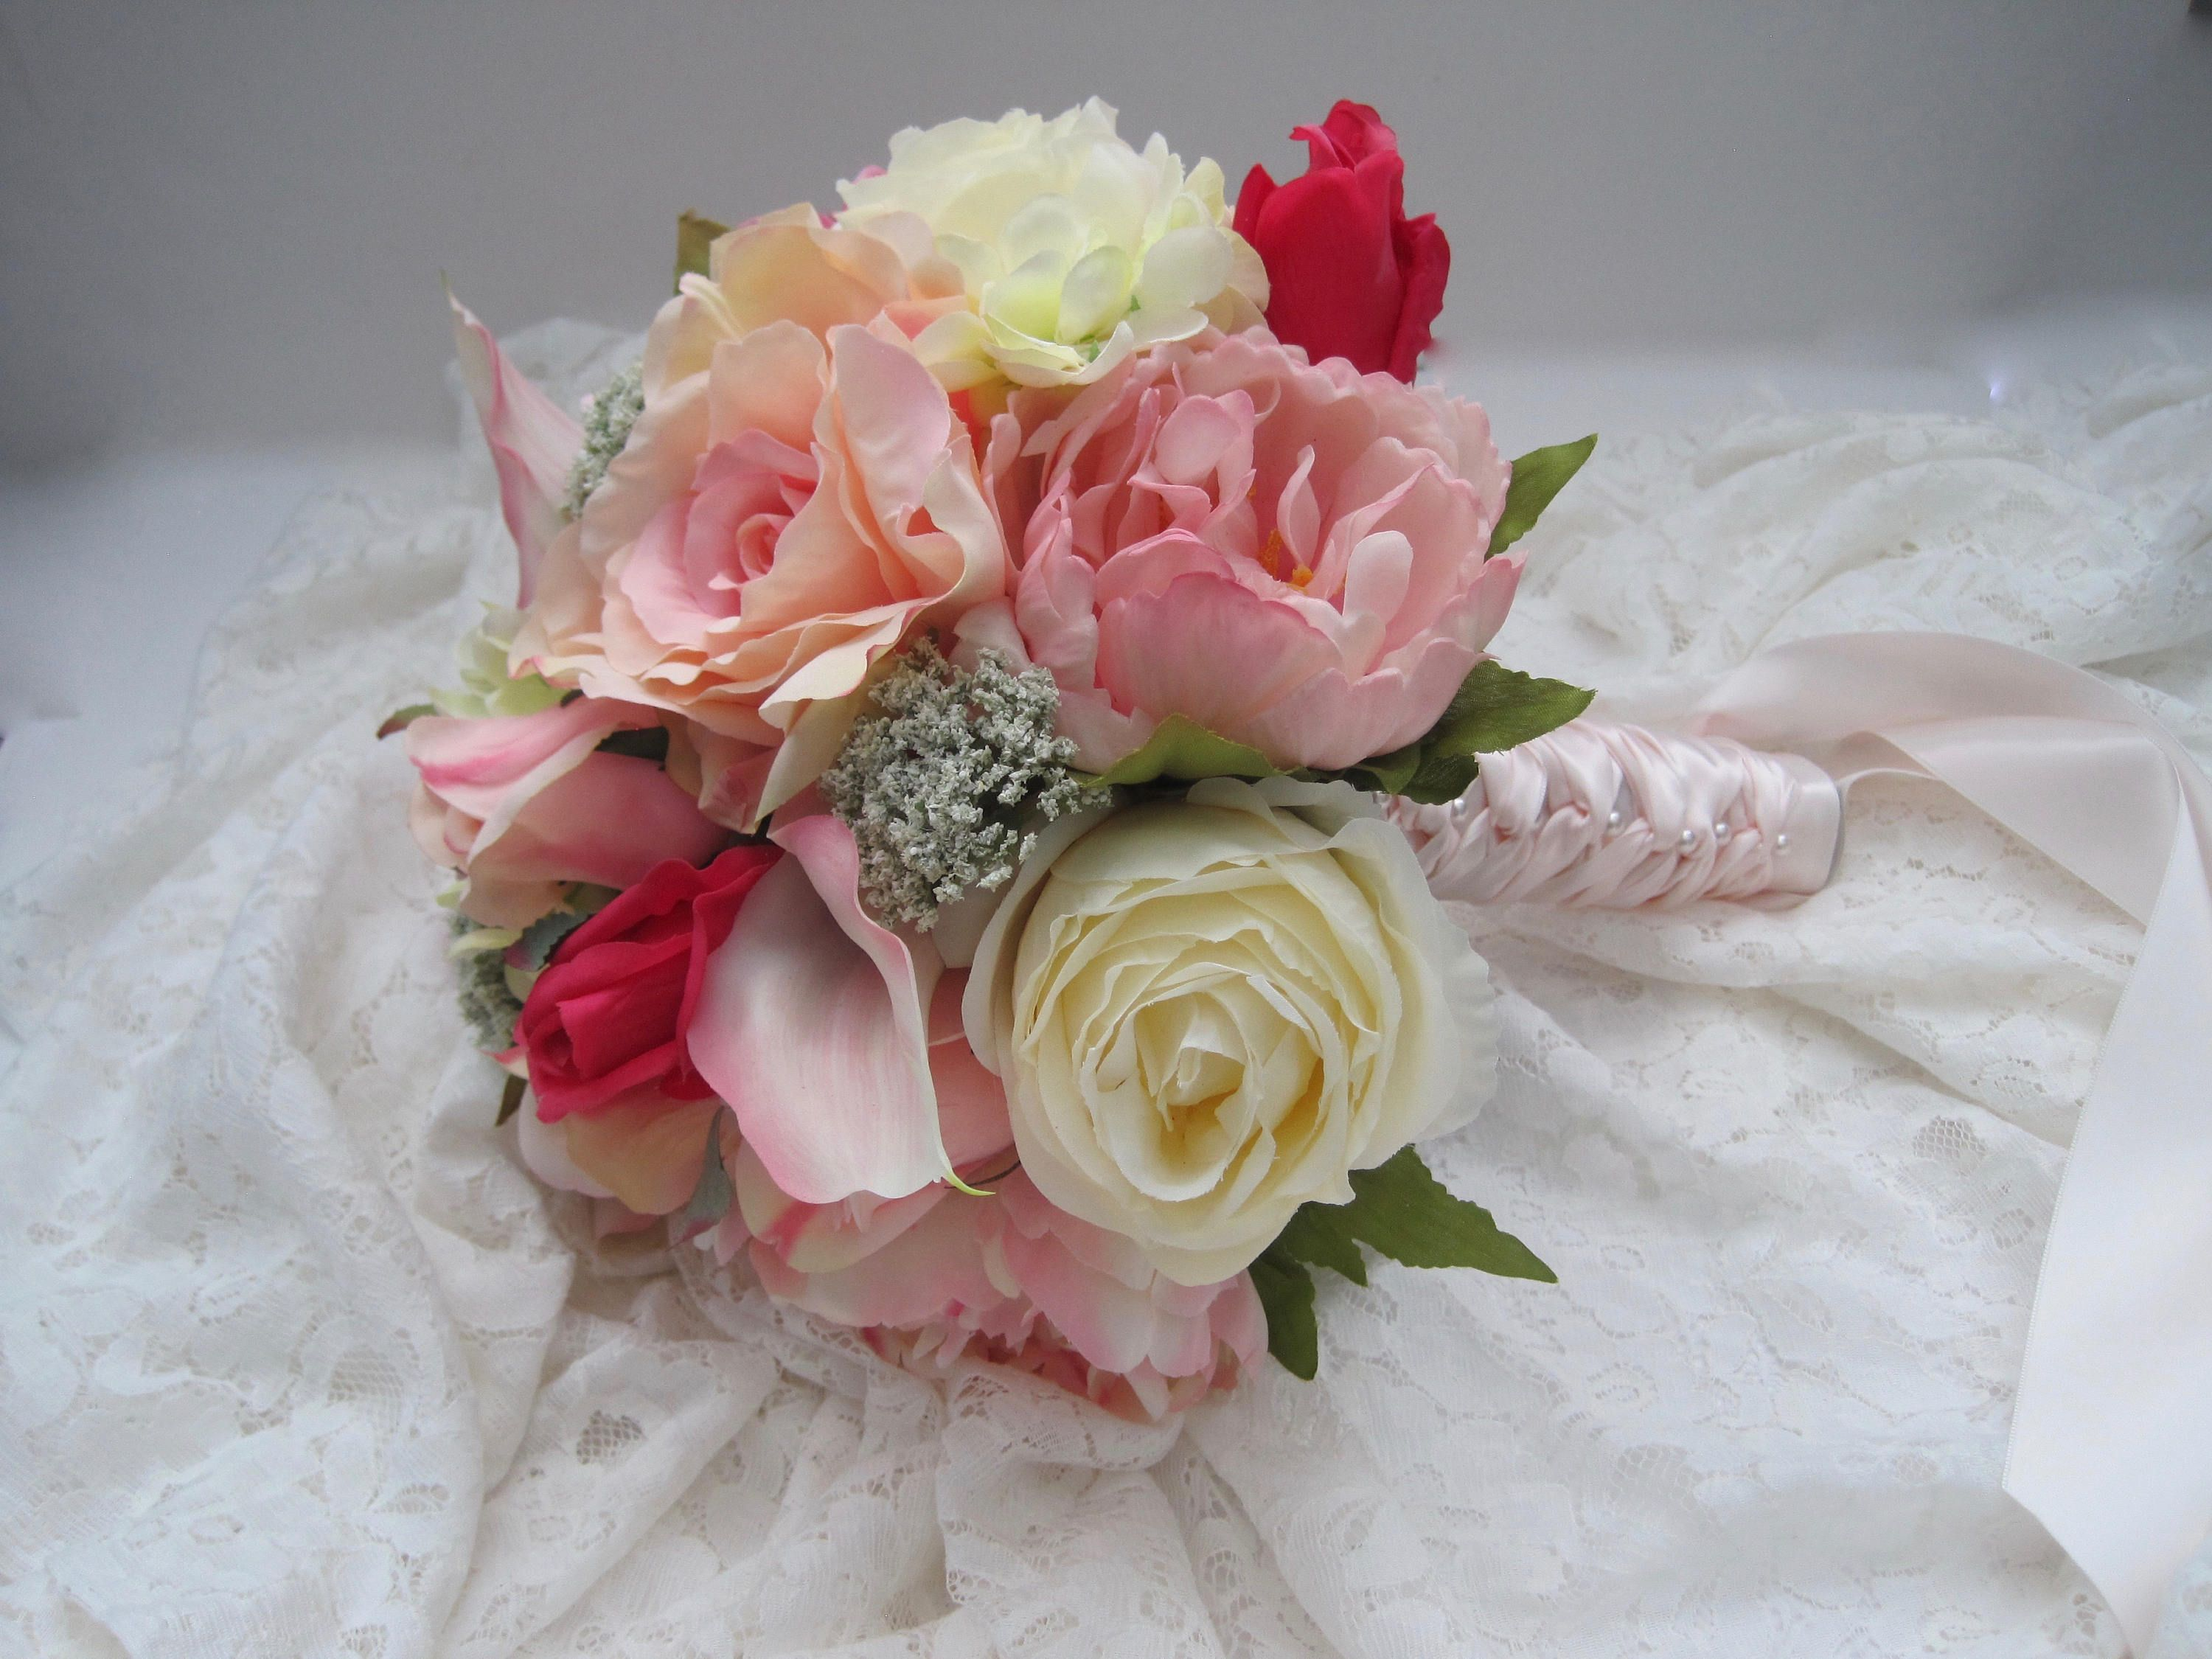 Stunning Mixed Flower Bridal Bouquet Hydrangea Peonies Roses Lilies French Knotted With Pearl Accented Handle Ready To Ship Wedding Bouquets